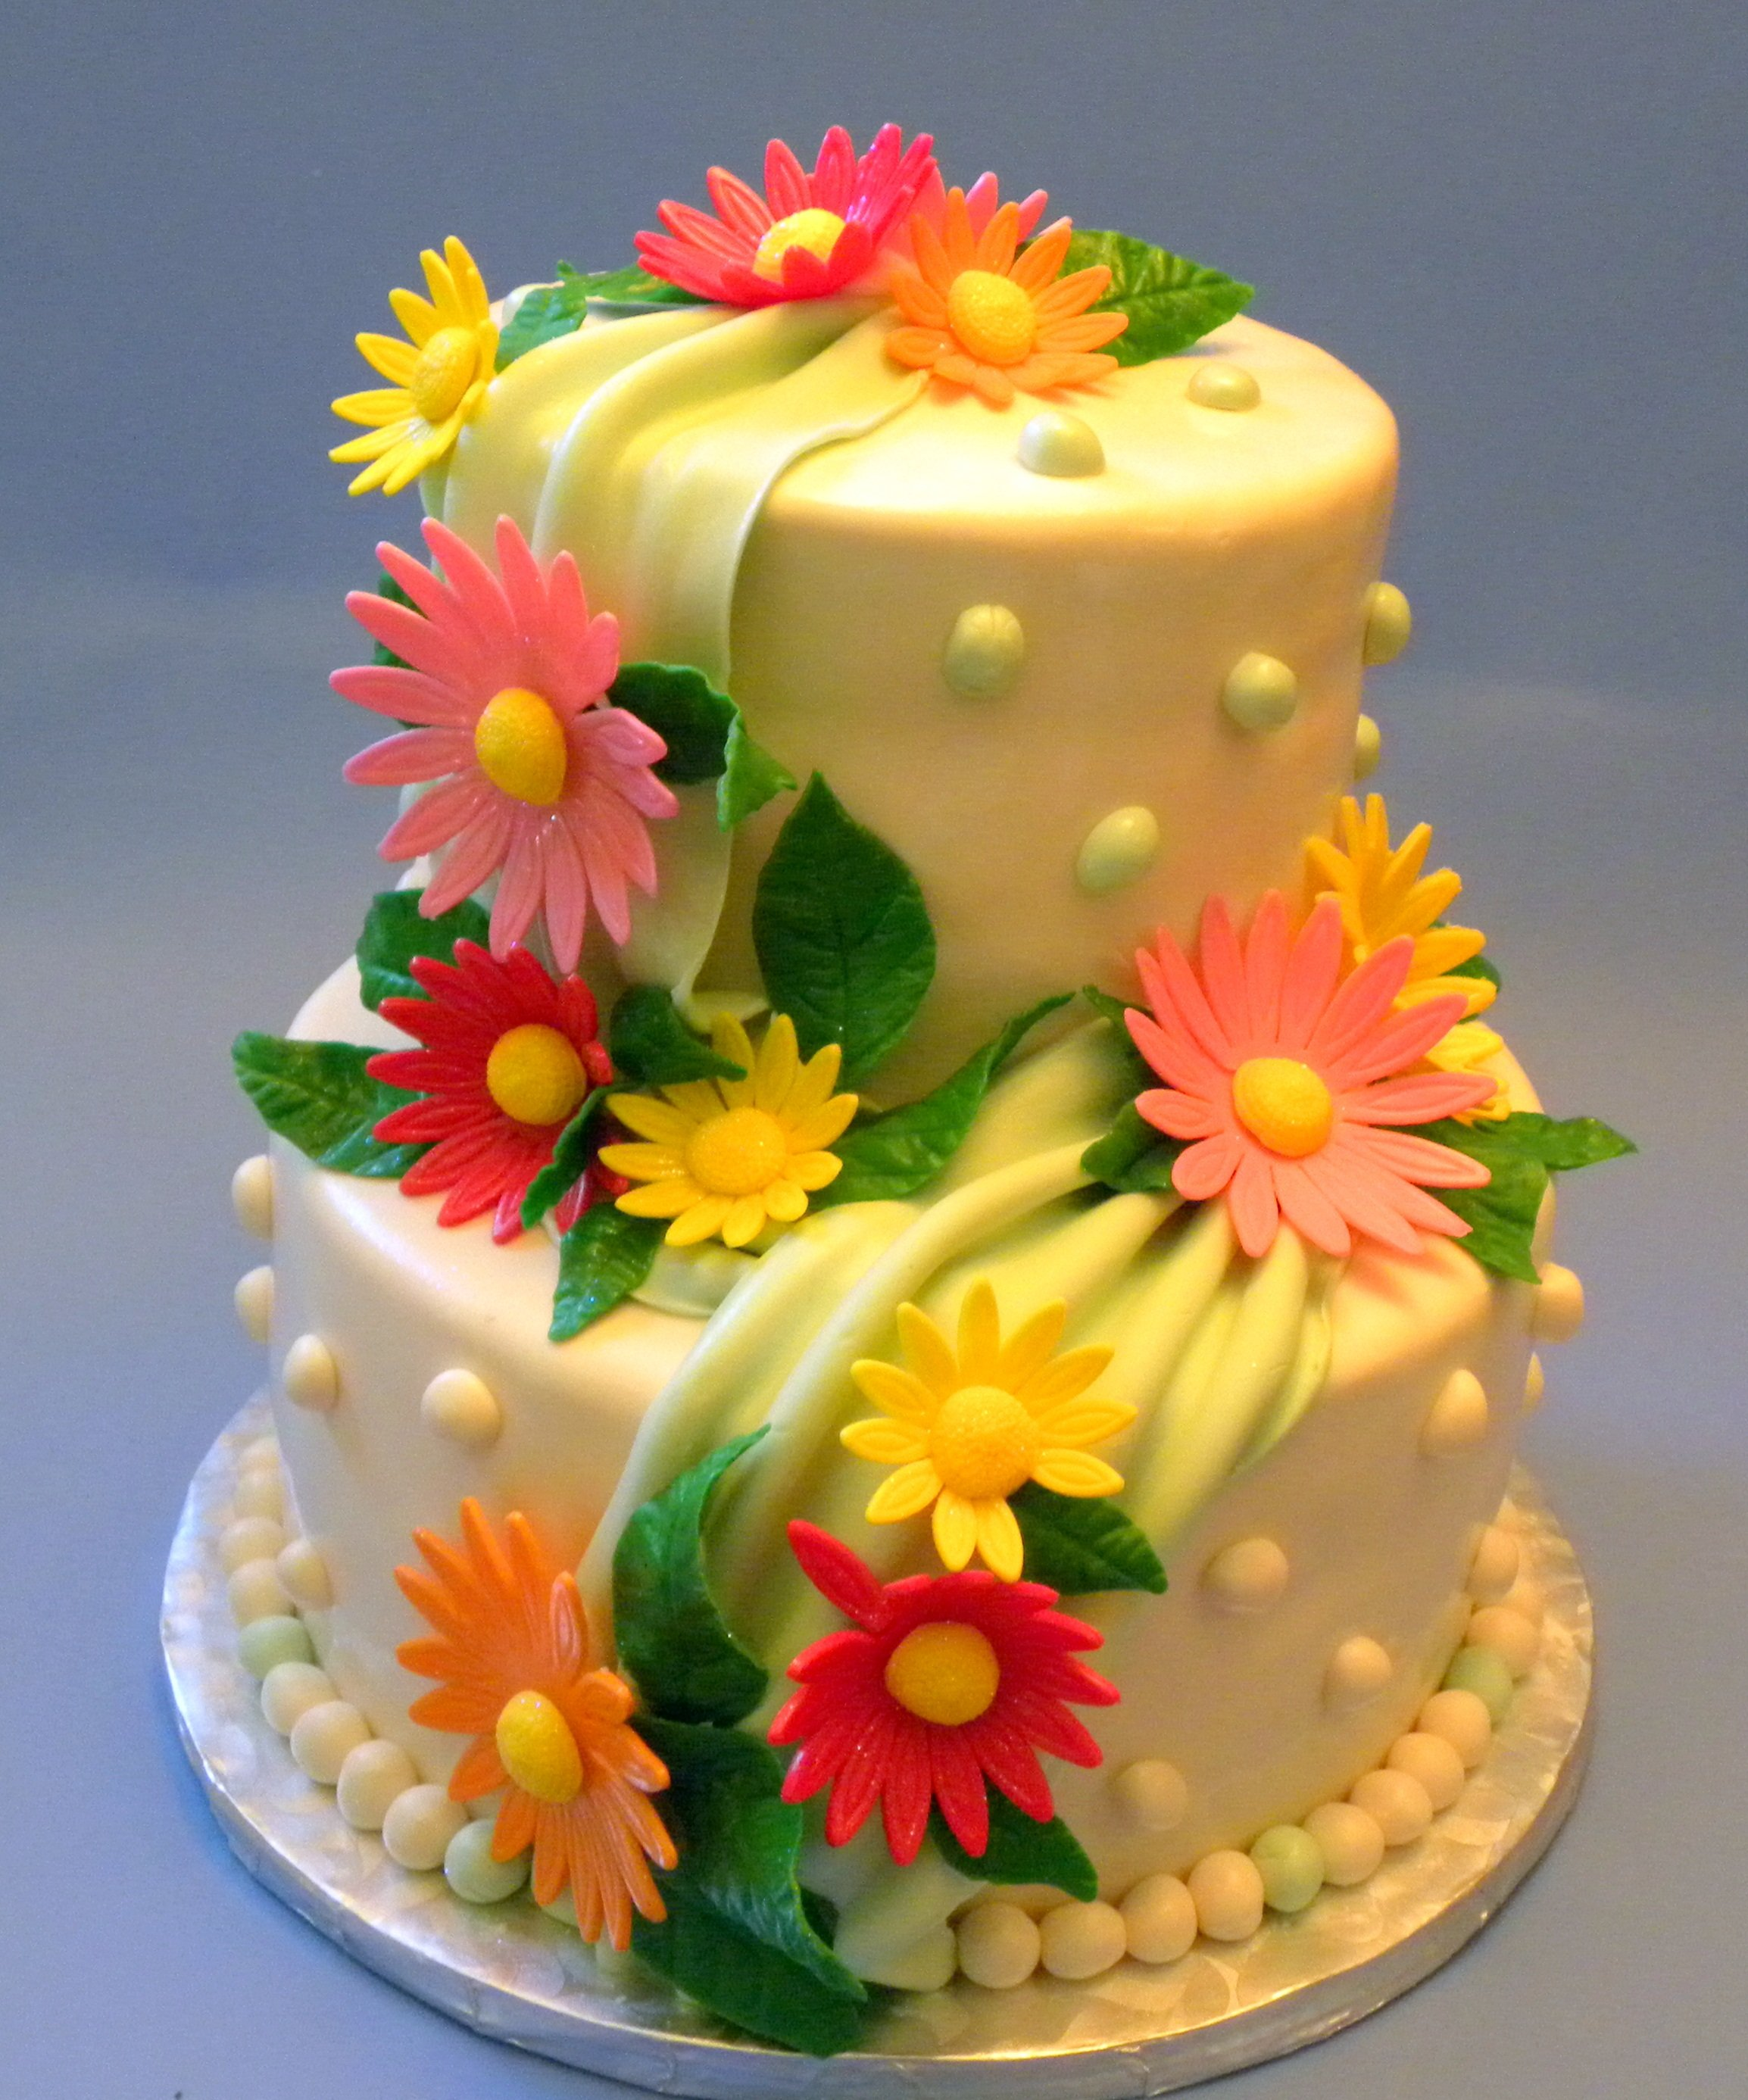 Order Flowers For Delivery Birthday Cake Flowers Flower Cakes